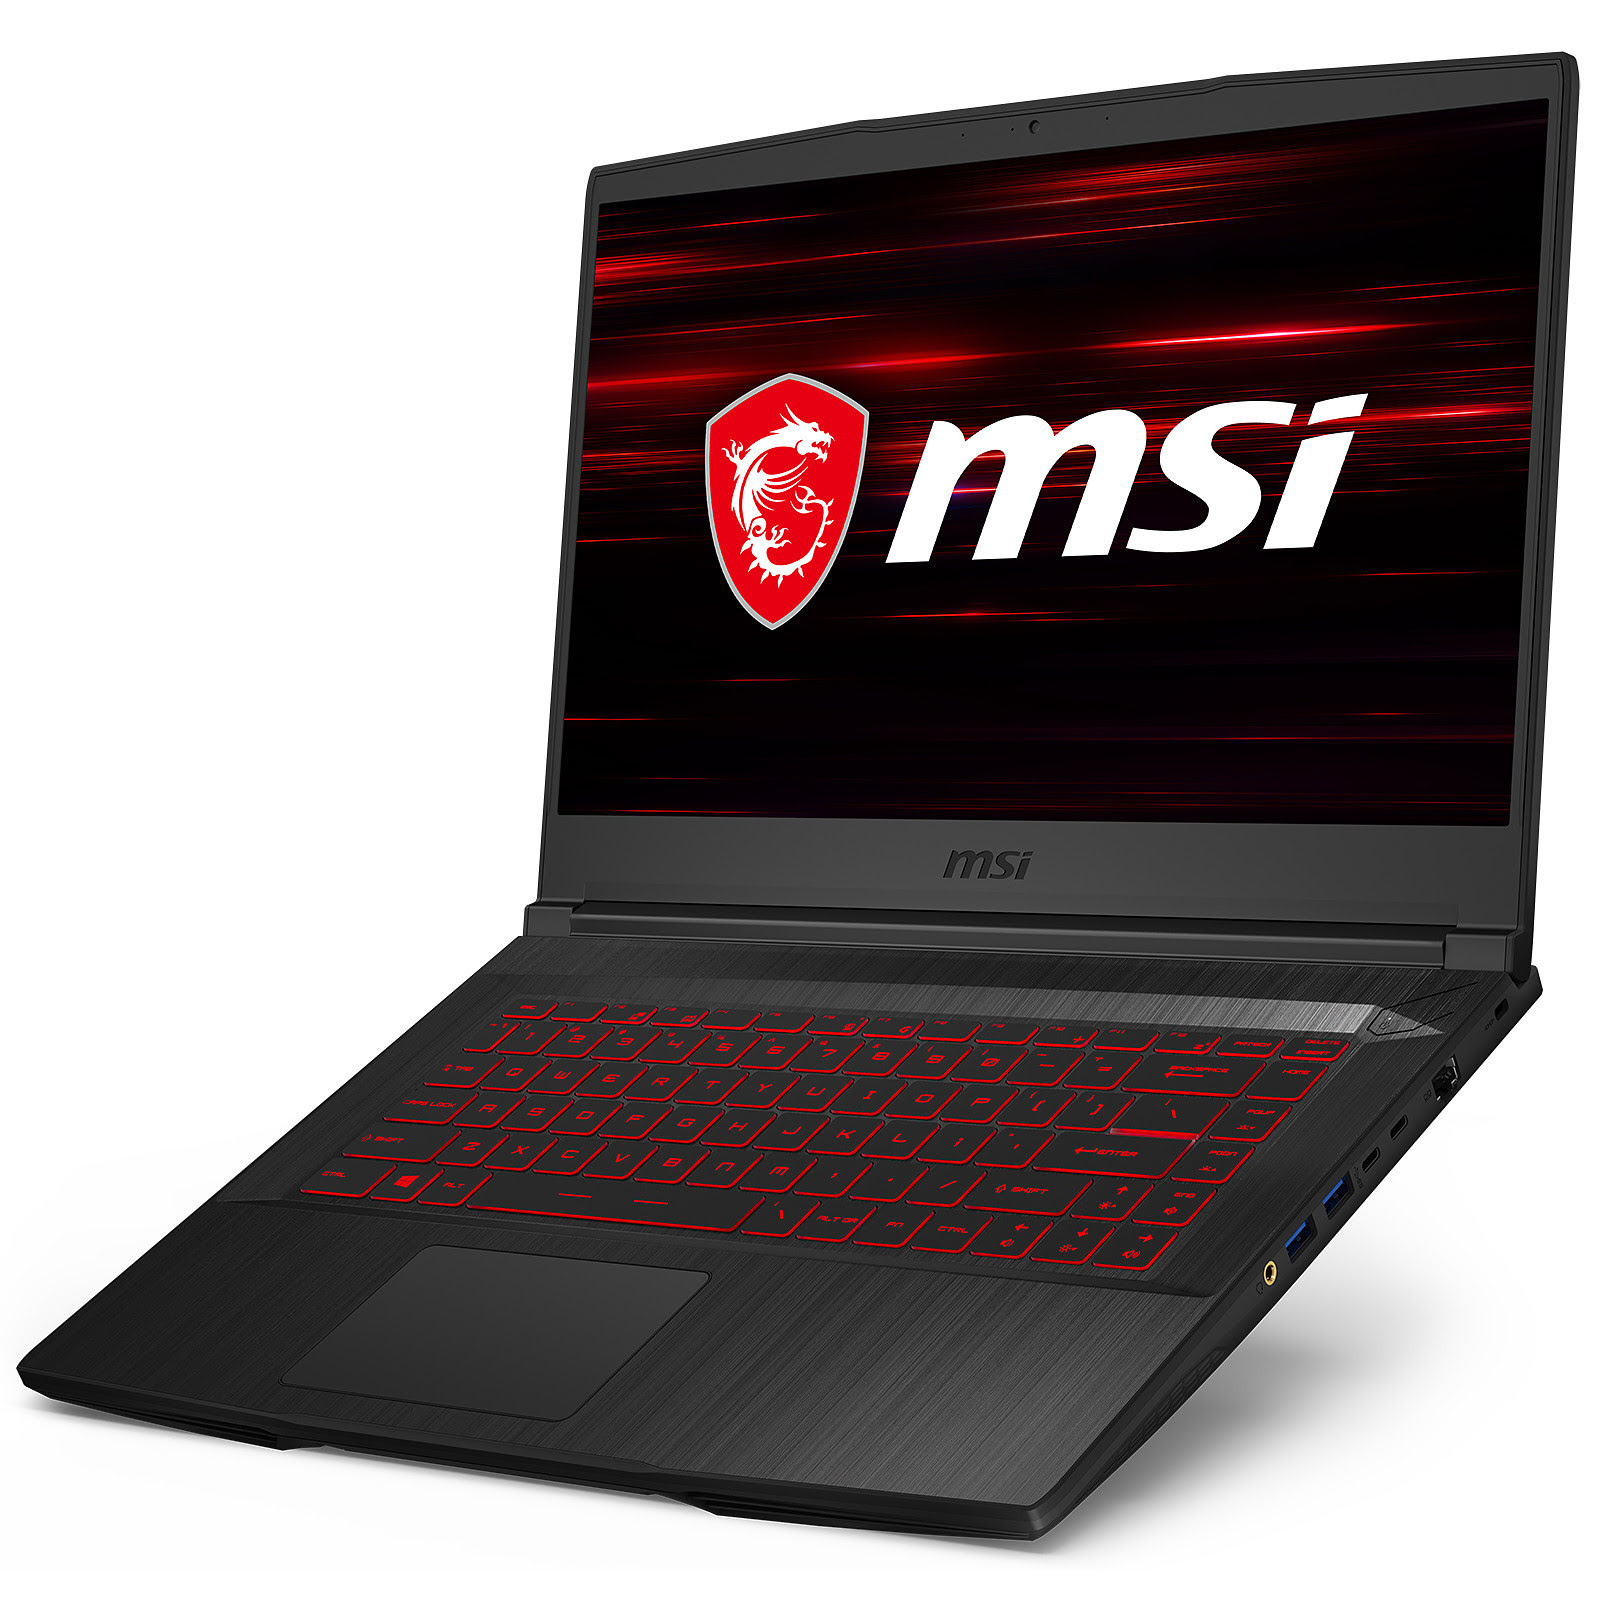 MSI 9S7-16W212-041 - PC portable MSI - Cybertek.fr - 0